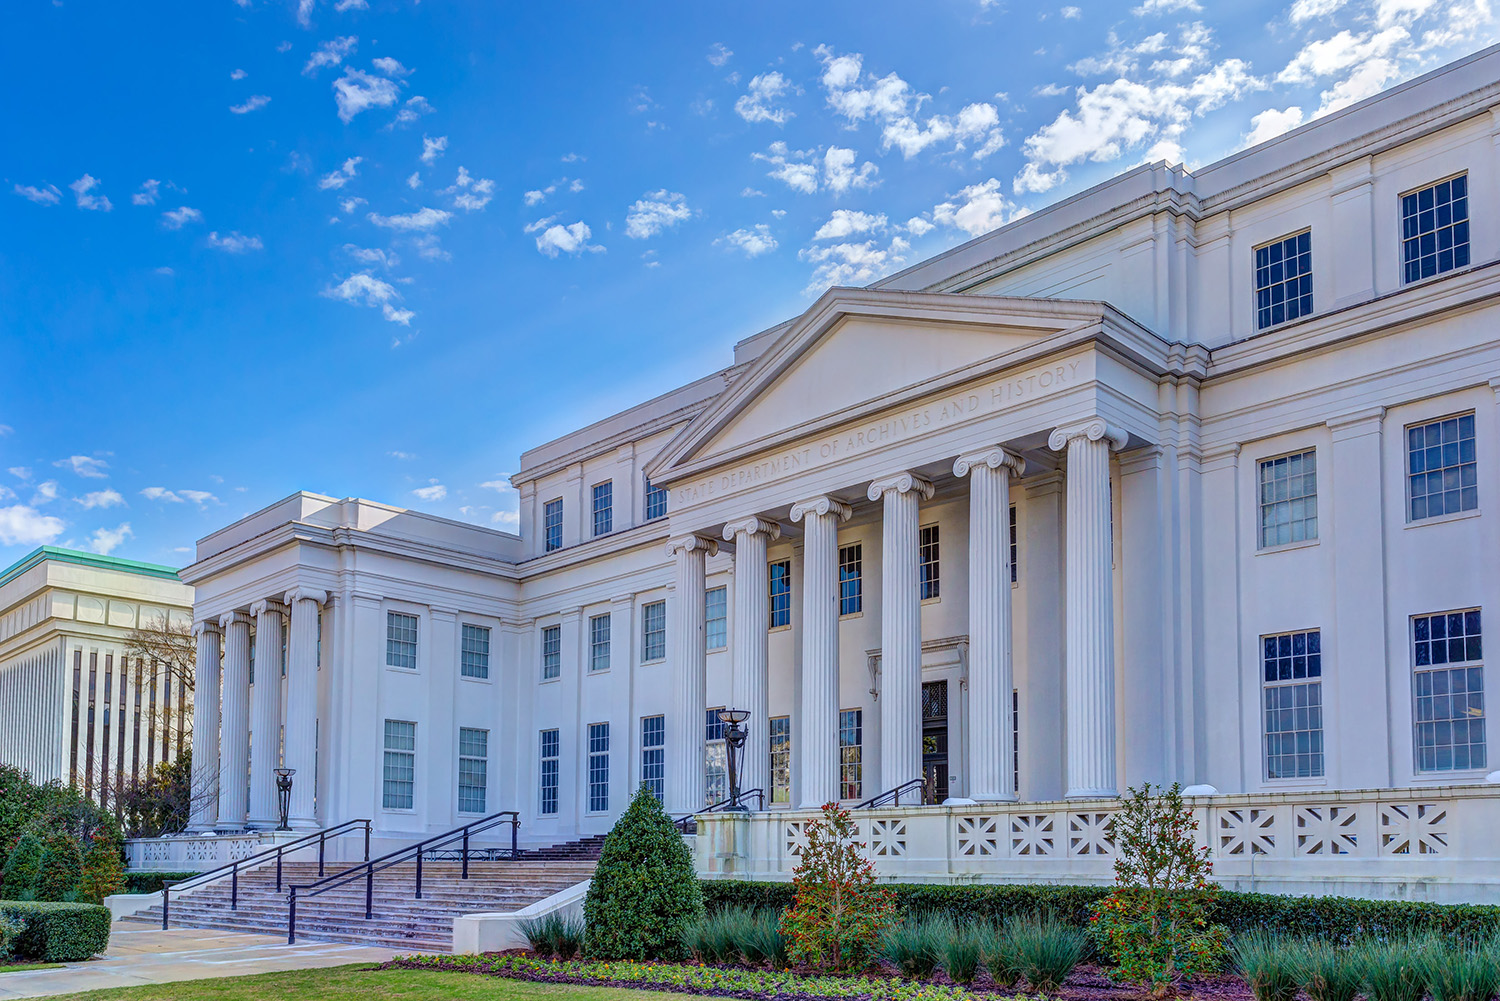 Alabama Department of Archives and History admits perpetuating systemic racism